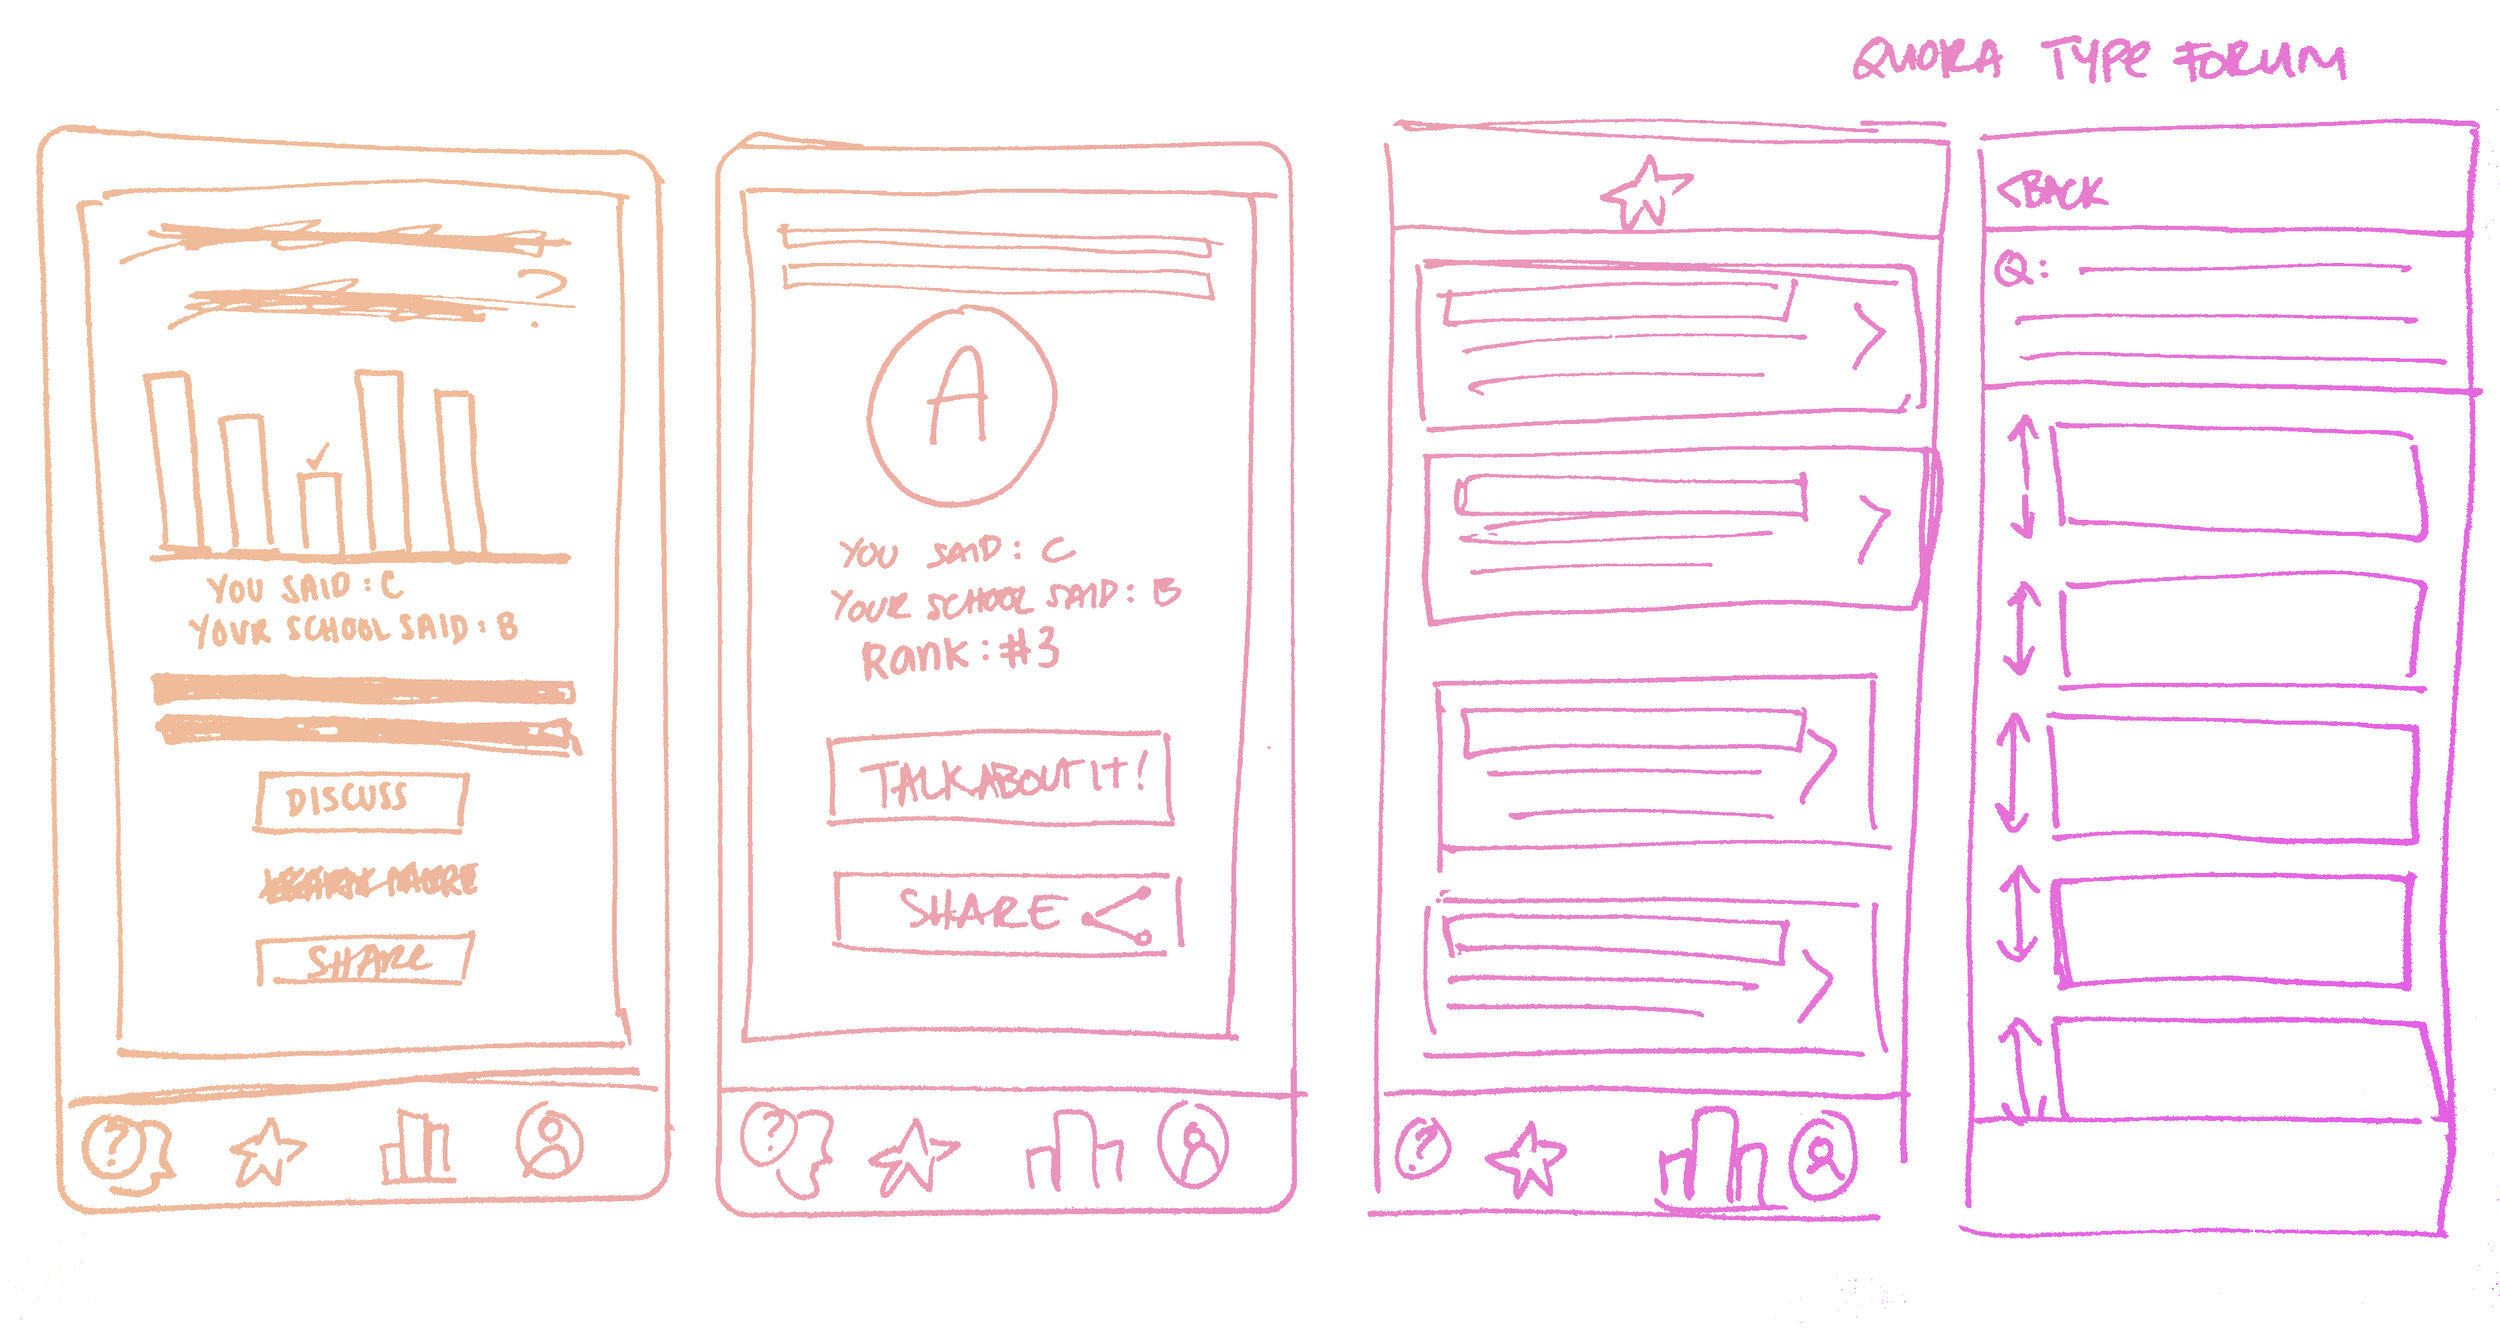 Design Studio.  Early sketches showing the live trivia and forum sections of the app. The first two sketches show different ways of showing the correct answer after a live trivia question. The forum sketches show that upvoting and downvoting comments á la Reddit was conceived in early stages of ideation.